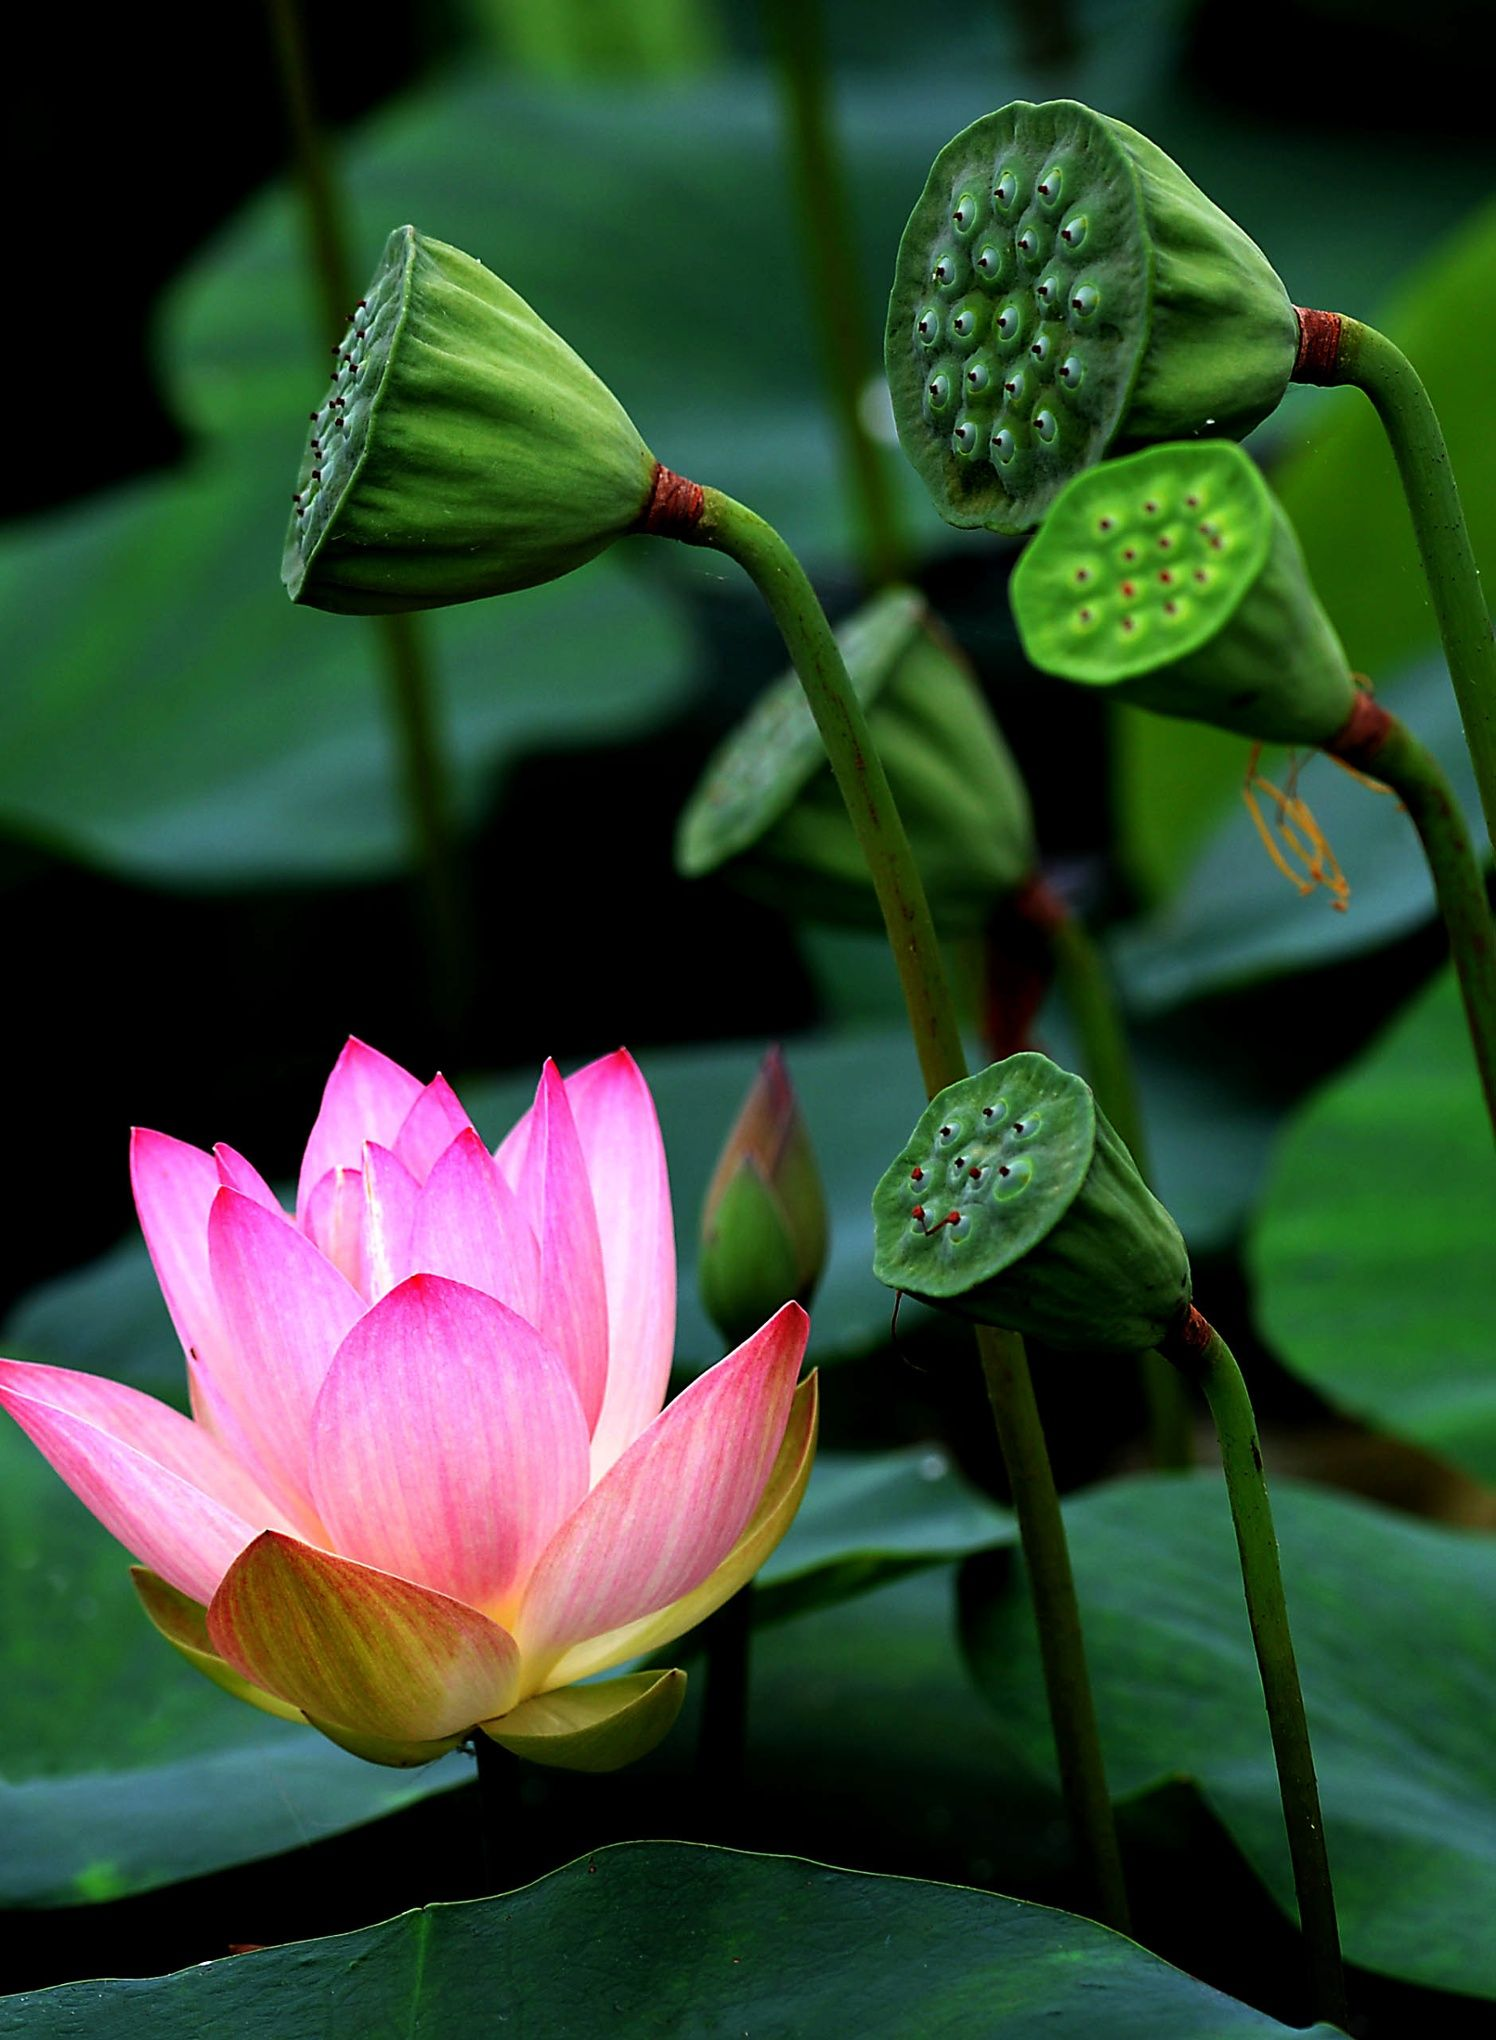 Lotus Flower Season In China Reaches Full Bloom In Pictures